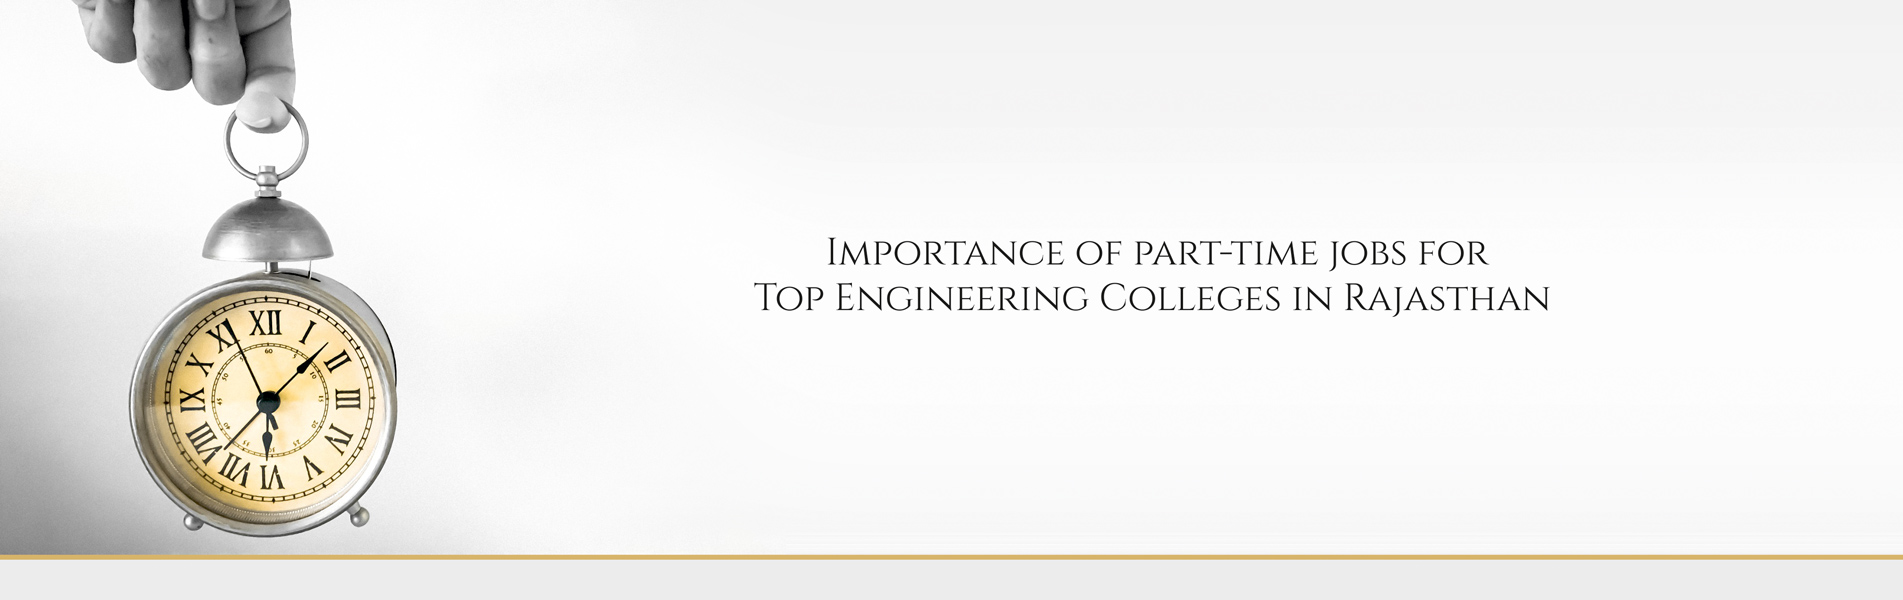 Importance-of-part-time-jobs-for-Top-Engineering-Colleges-in-Rajasthan